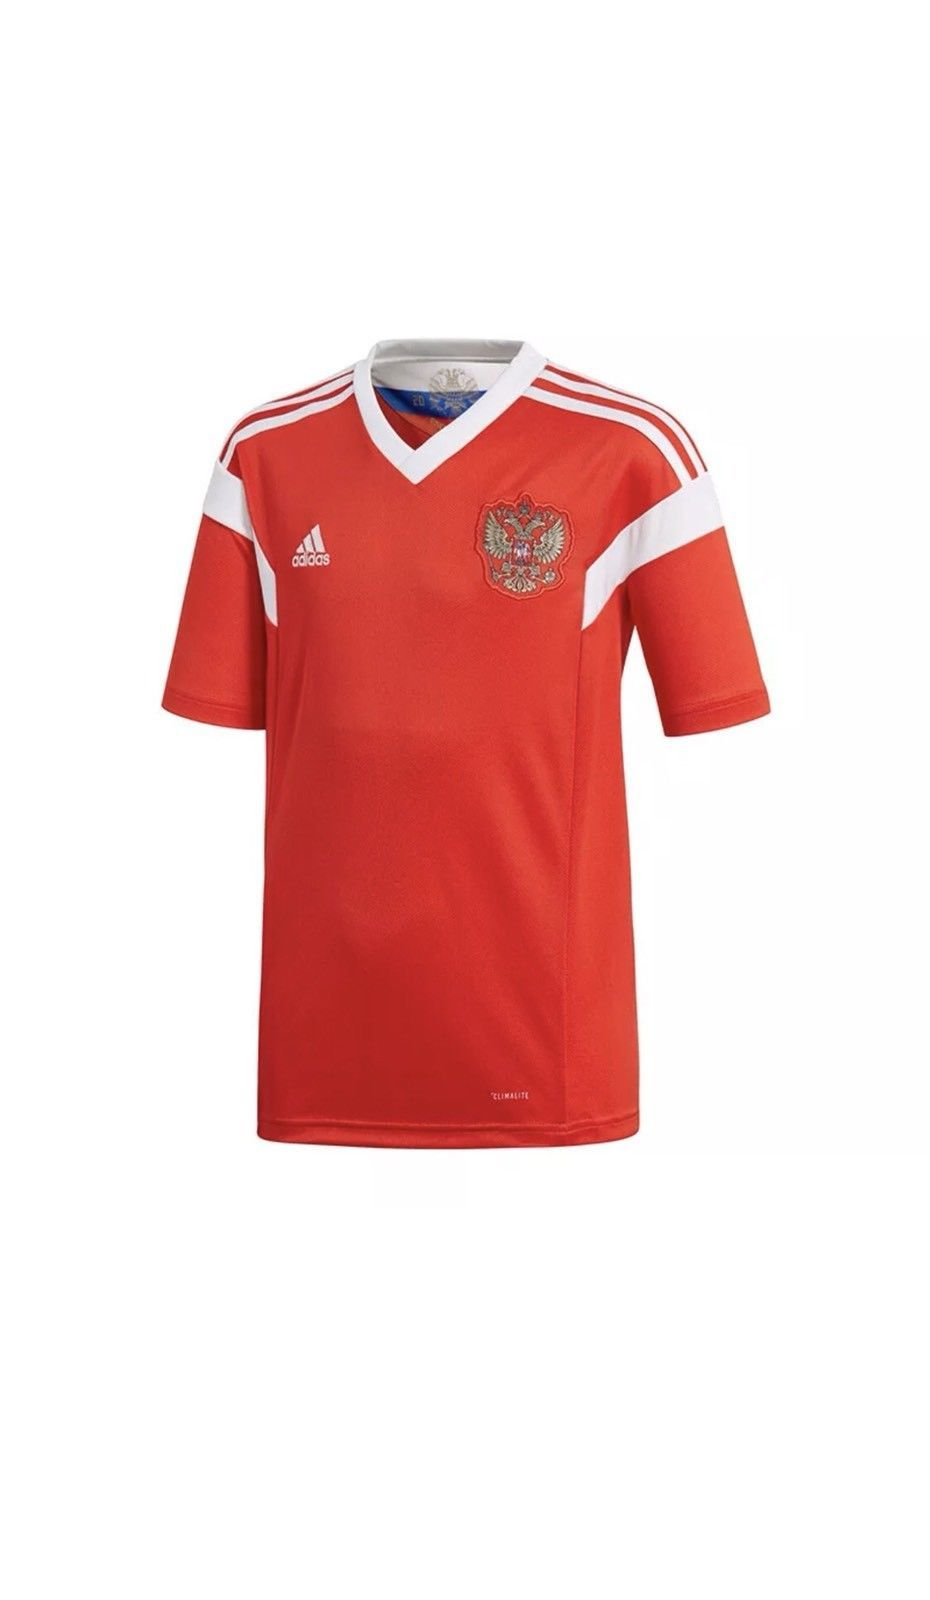 a0b1111e074 Adidas Russia Jersey FIFA WORLD CUP 2018 Unisex Red White Football Soccer  Top XS Discount Price 69.99 Free Shipping Buy it Now